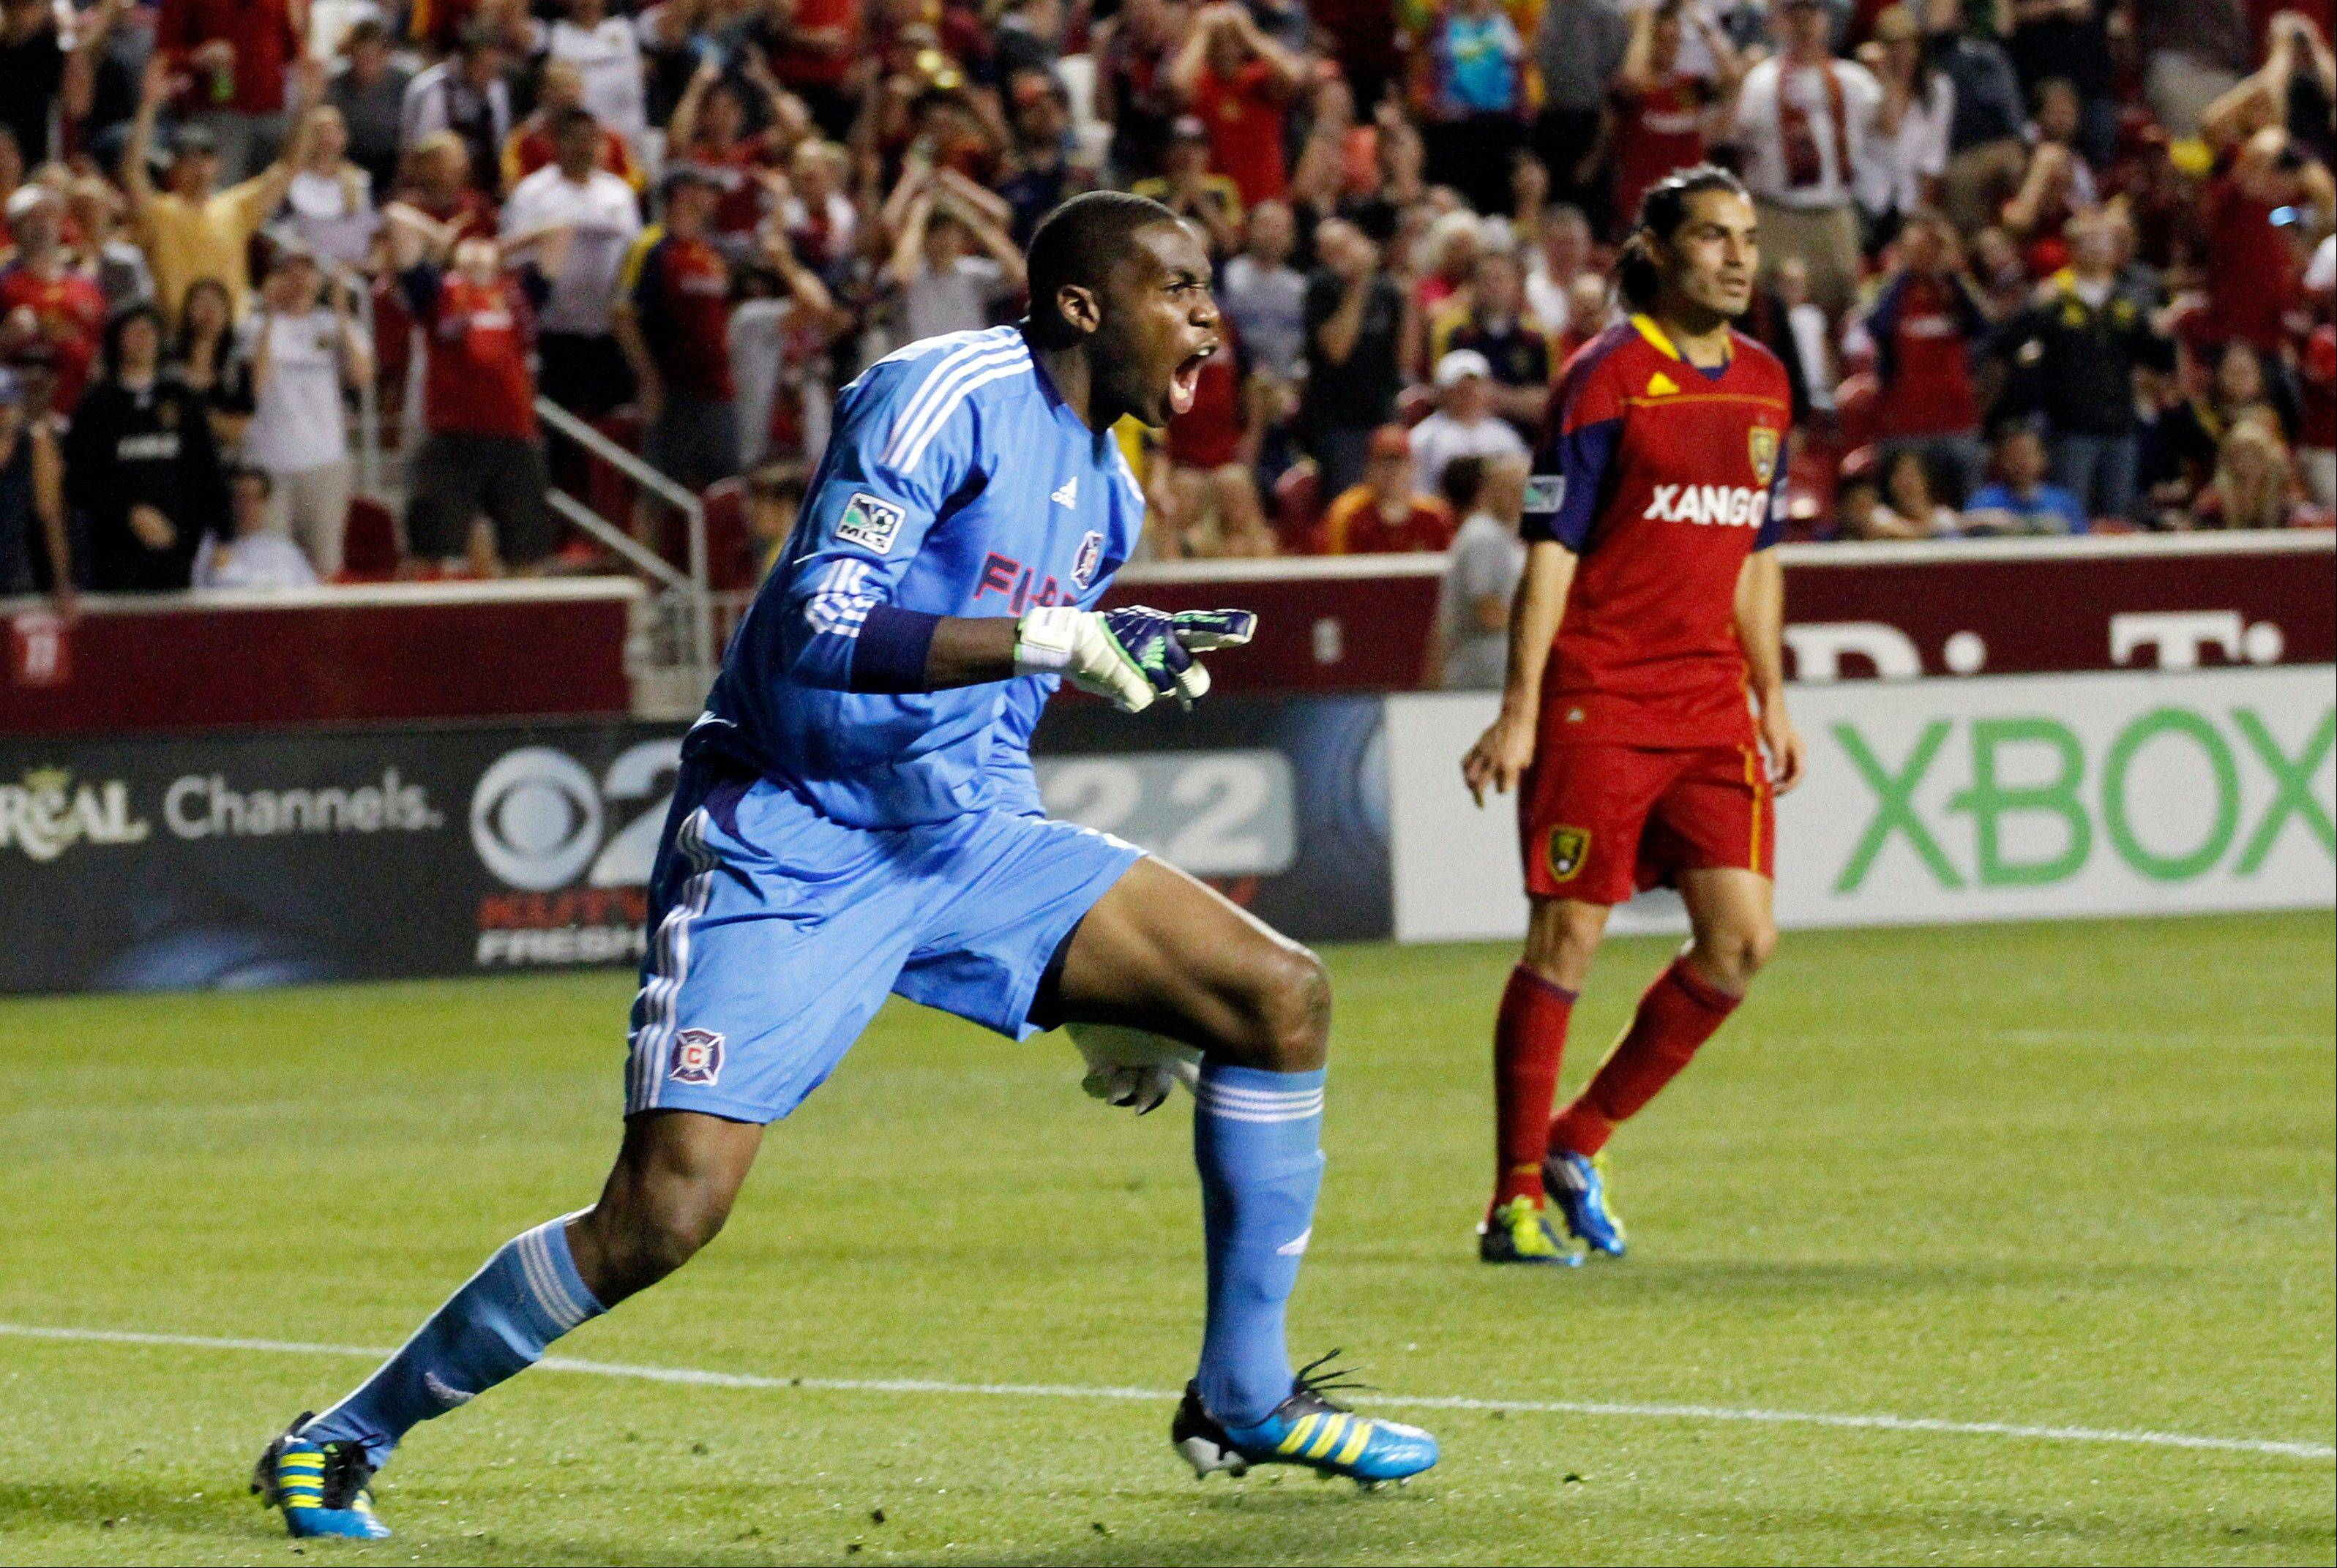 Chicago Fire goalkeeper Sean Johnson (25) reacts after making a save against Real Salt Lake as Real Salt Lake forward Fabian Espindola (7) stands nearby during the first half of an MLS soccer match in Salt Lake City, Wednesday, Sept. 28, 2011. (AP Photo/Jim Urquhart)